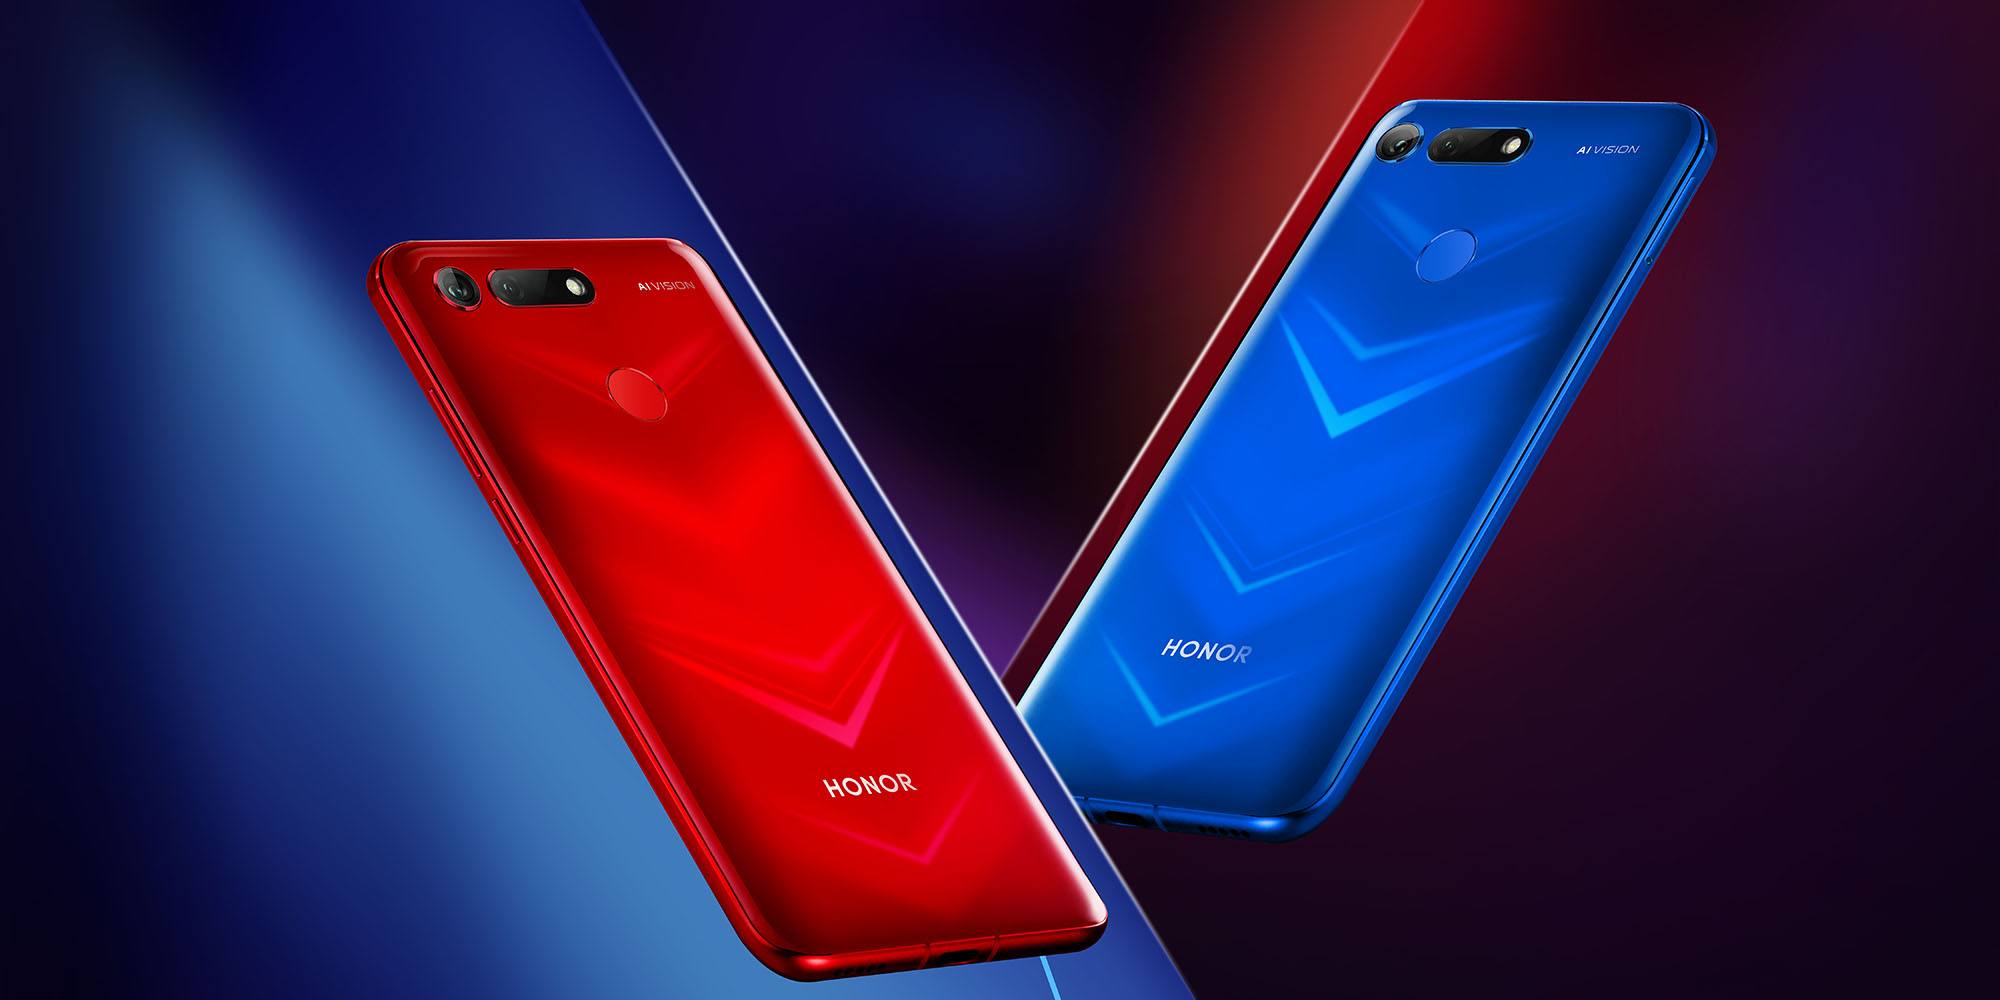 HONOR View20 Pantom Red & Phantom Blue